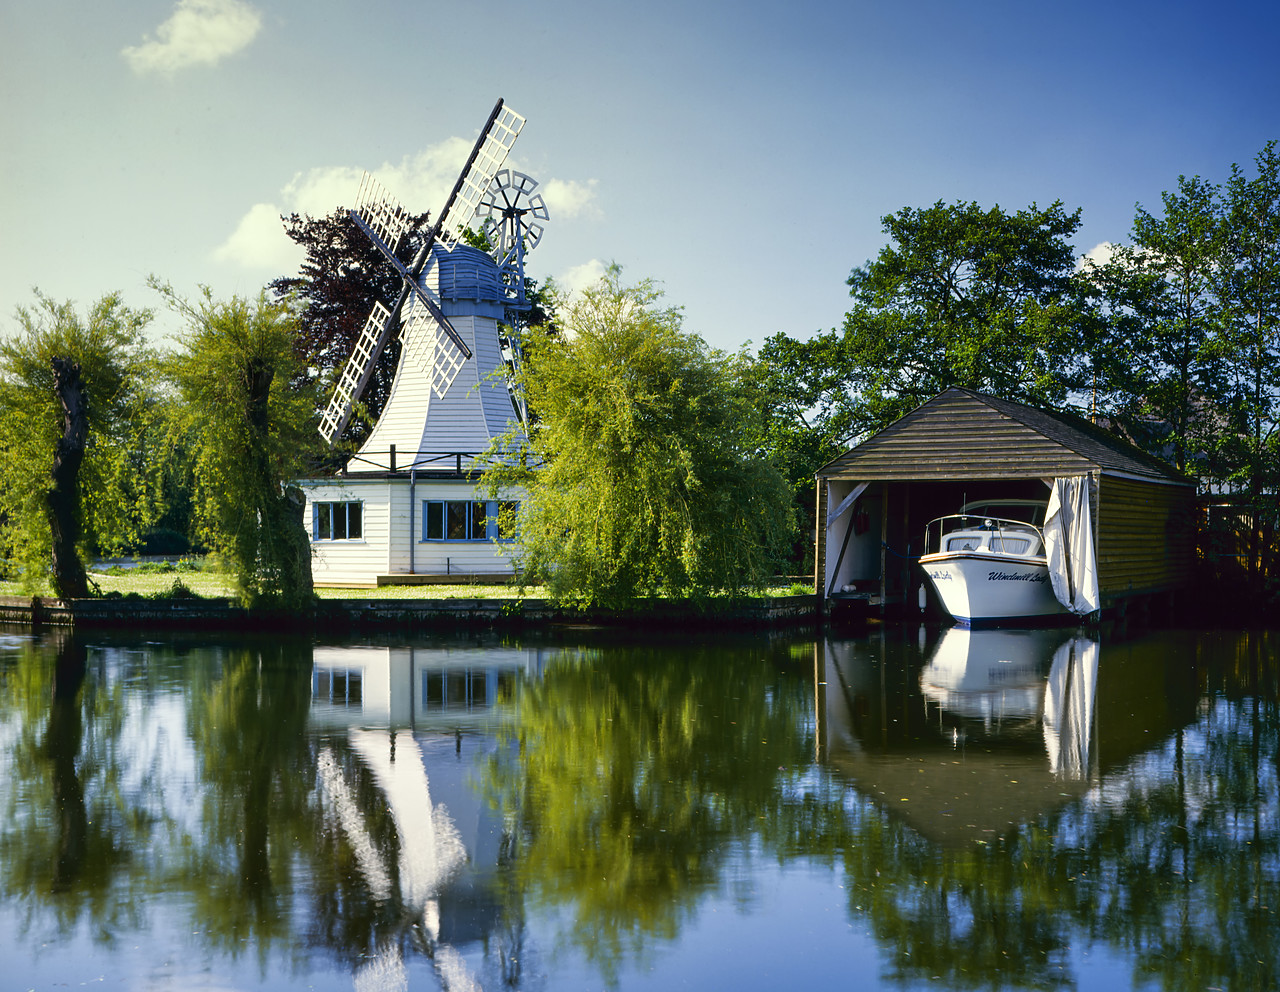 #400143-1 - Windmill Cottage, Horning, Norfolk Broads National Park, Norfolk, England